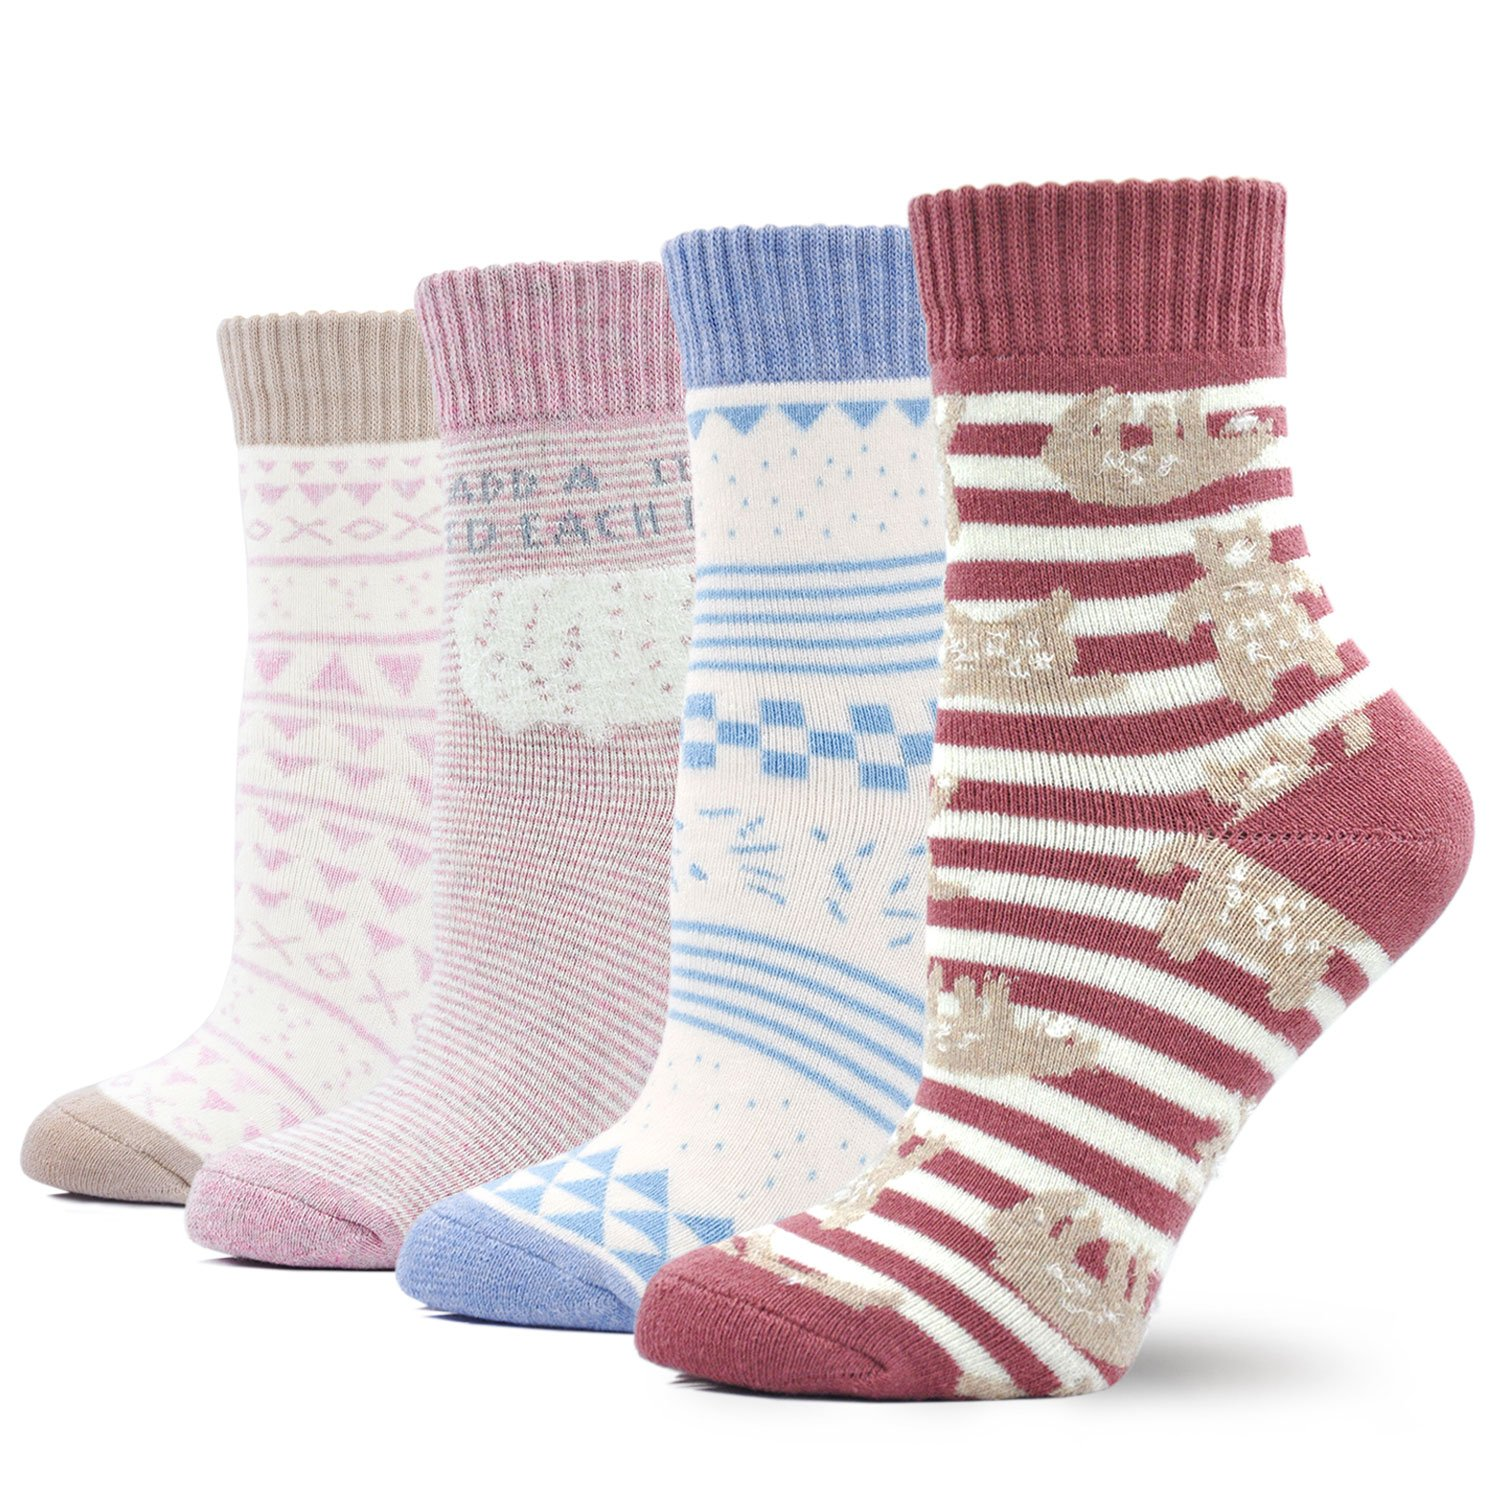 Women\'s Winter Warm Thickened Socks Vintage Style Cotton Crew Socks, 4 Pairs